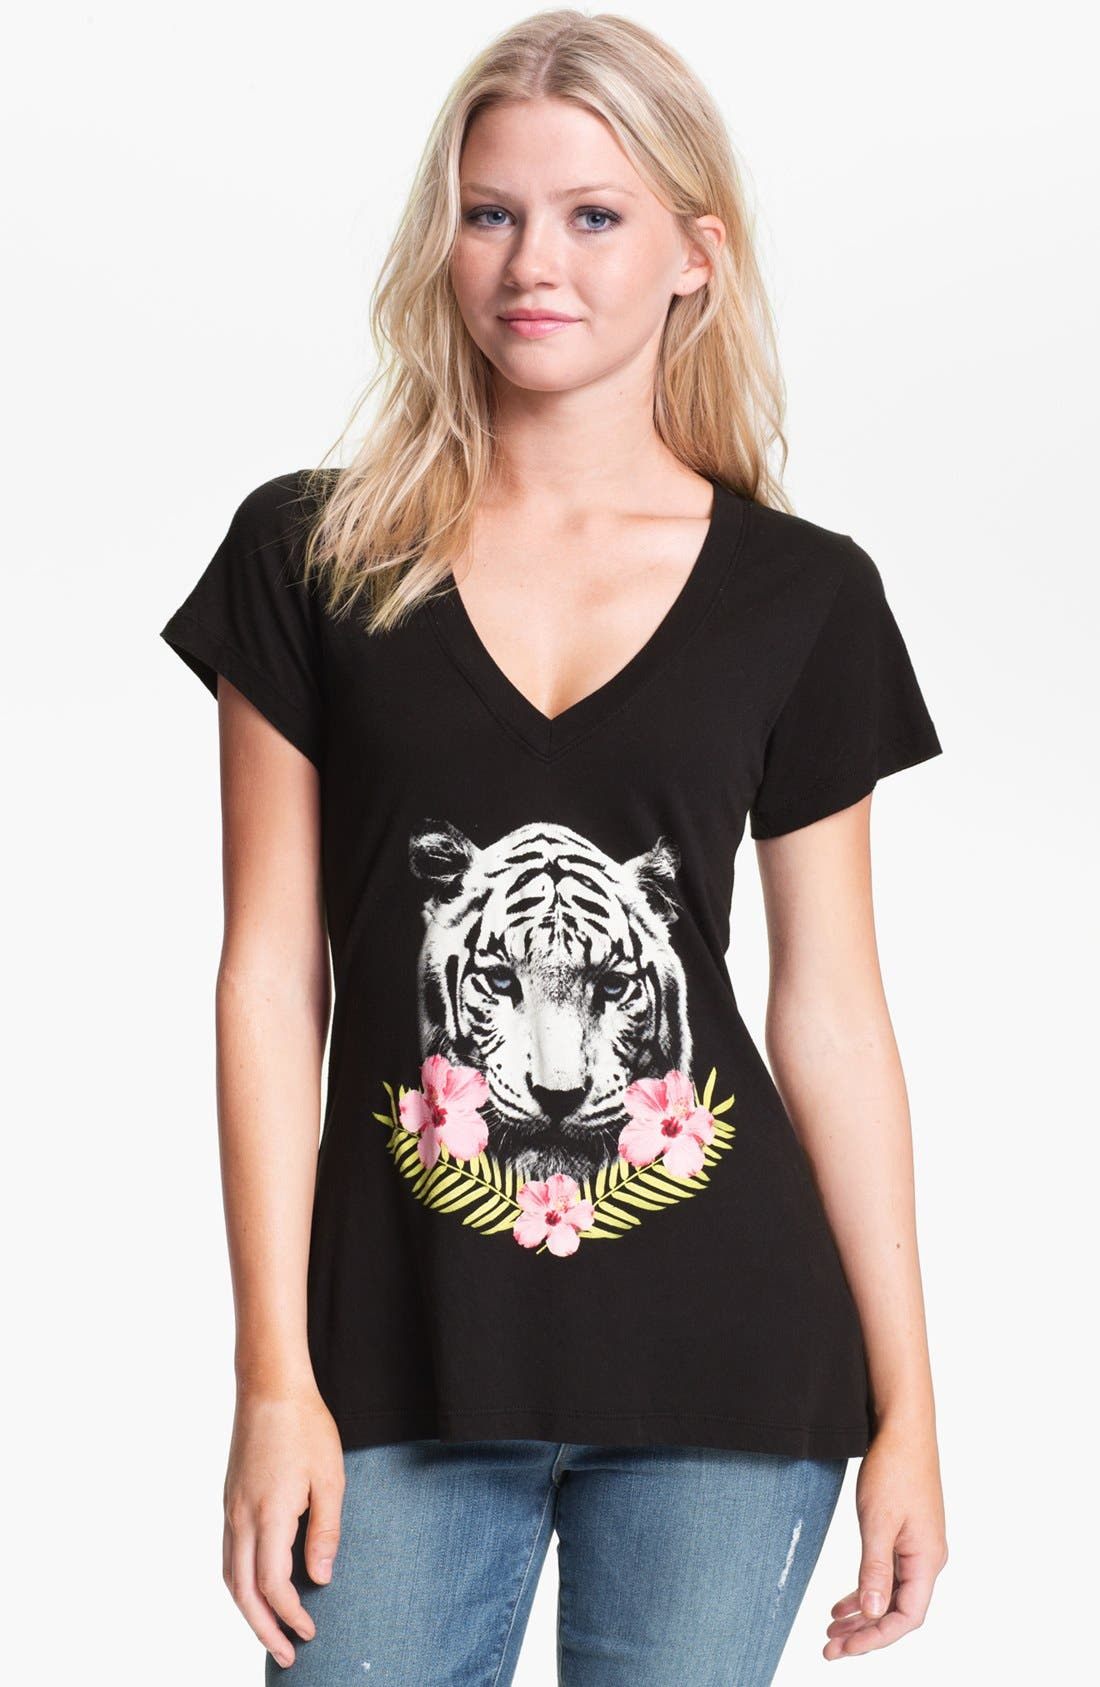 Main Image - Wildfox Tiger Graphic V-Neck Tee